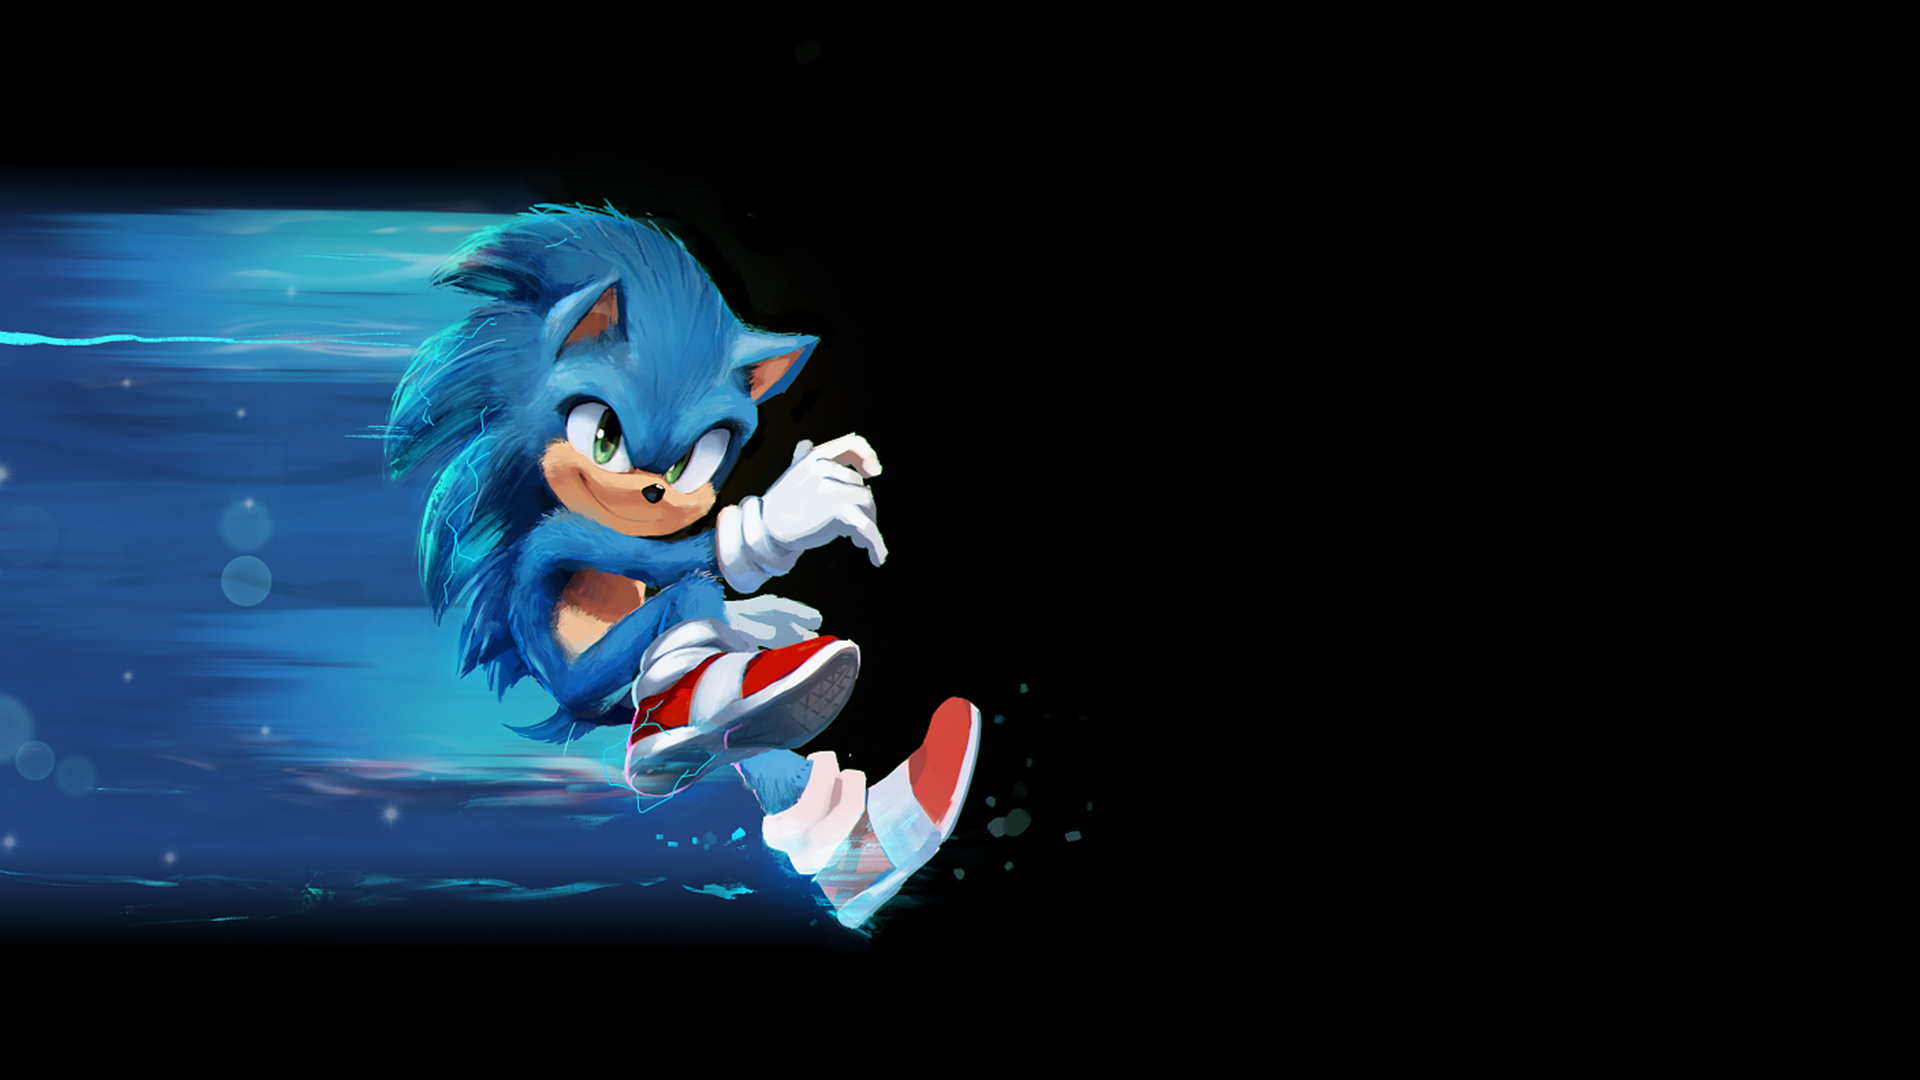 1080x2340 Sonic The Hedgehog Artwork 1080x2340 Resolution Wallpaper Hd Movies 4k Wallpapers Images Photos And Background